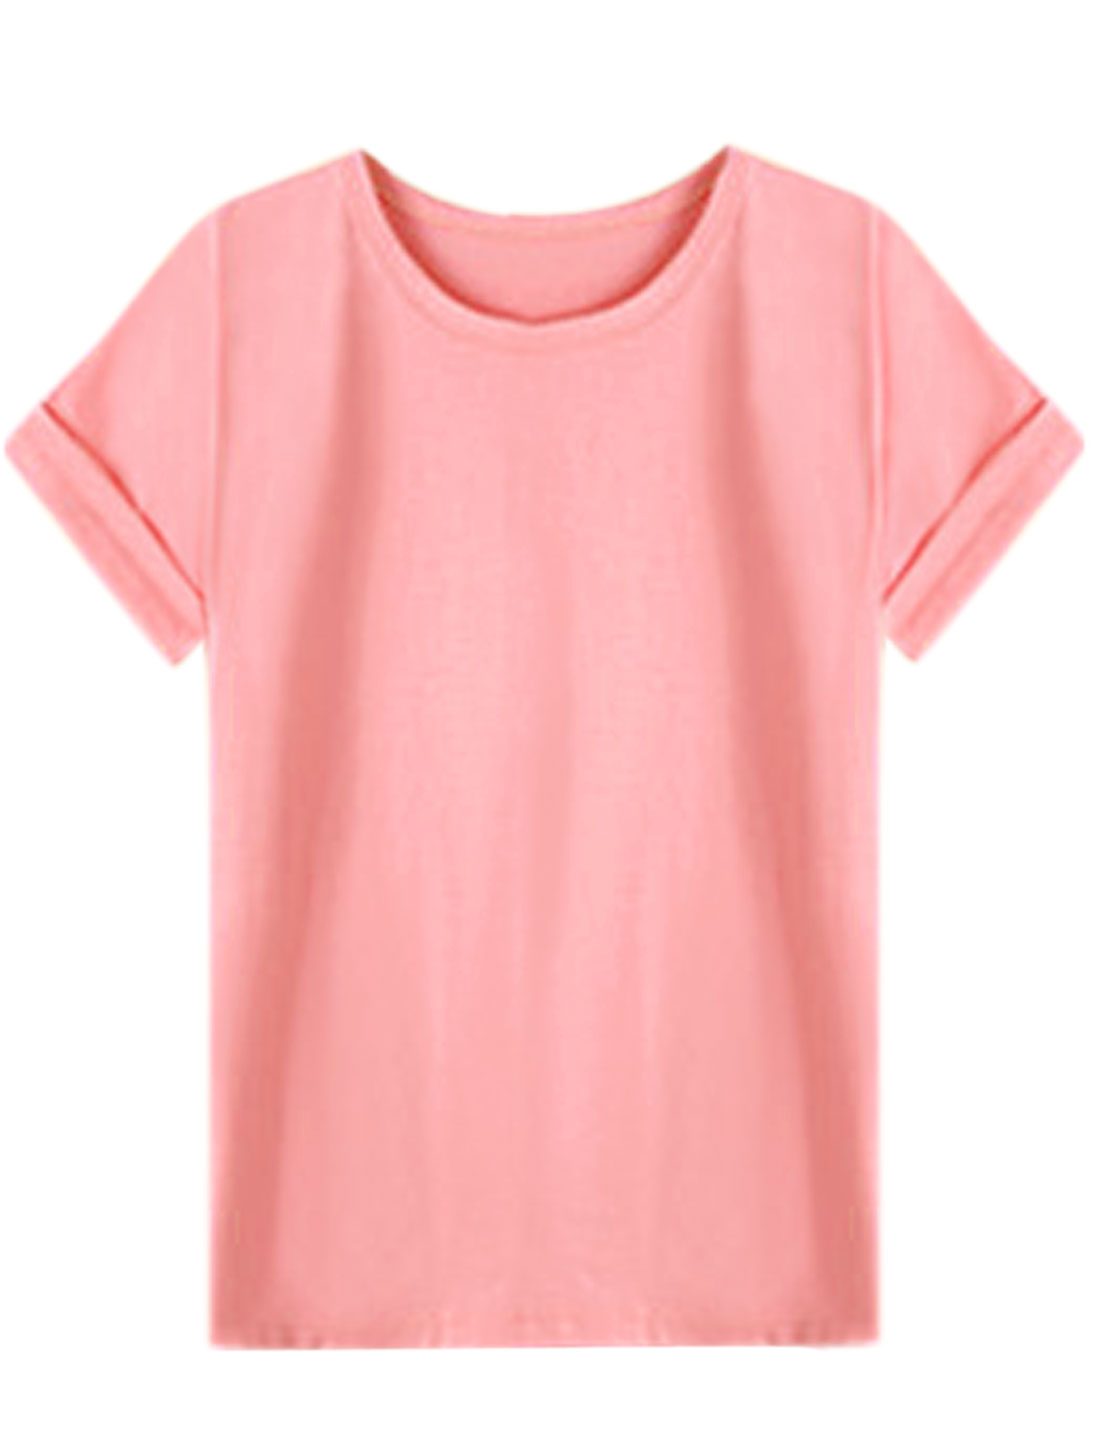 Women Short Sleeve Round Neck Loose Fit Casual T-Shirt Pink XS